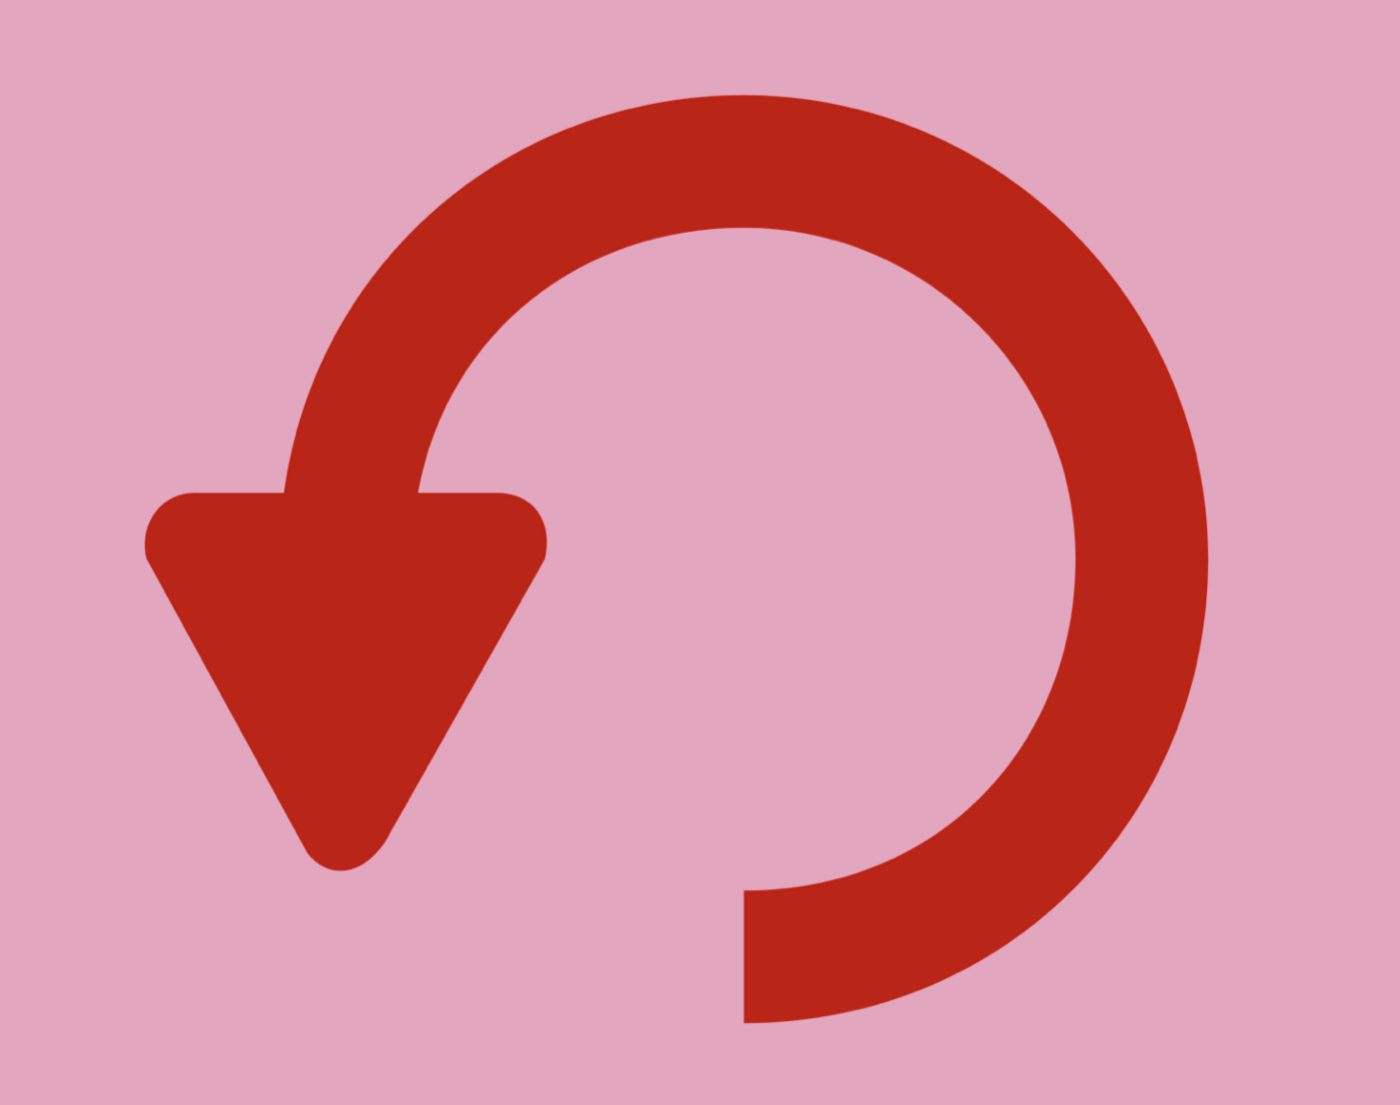 A red semi-circle with an arrow at one end, against a pink background